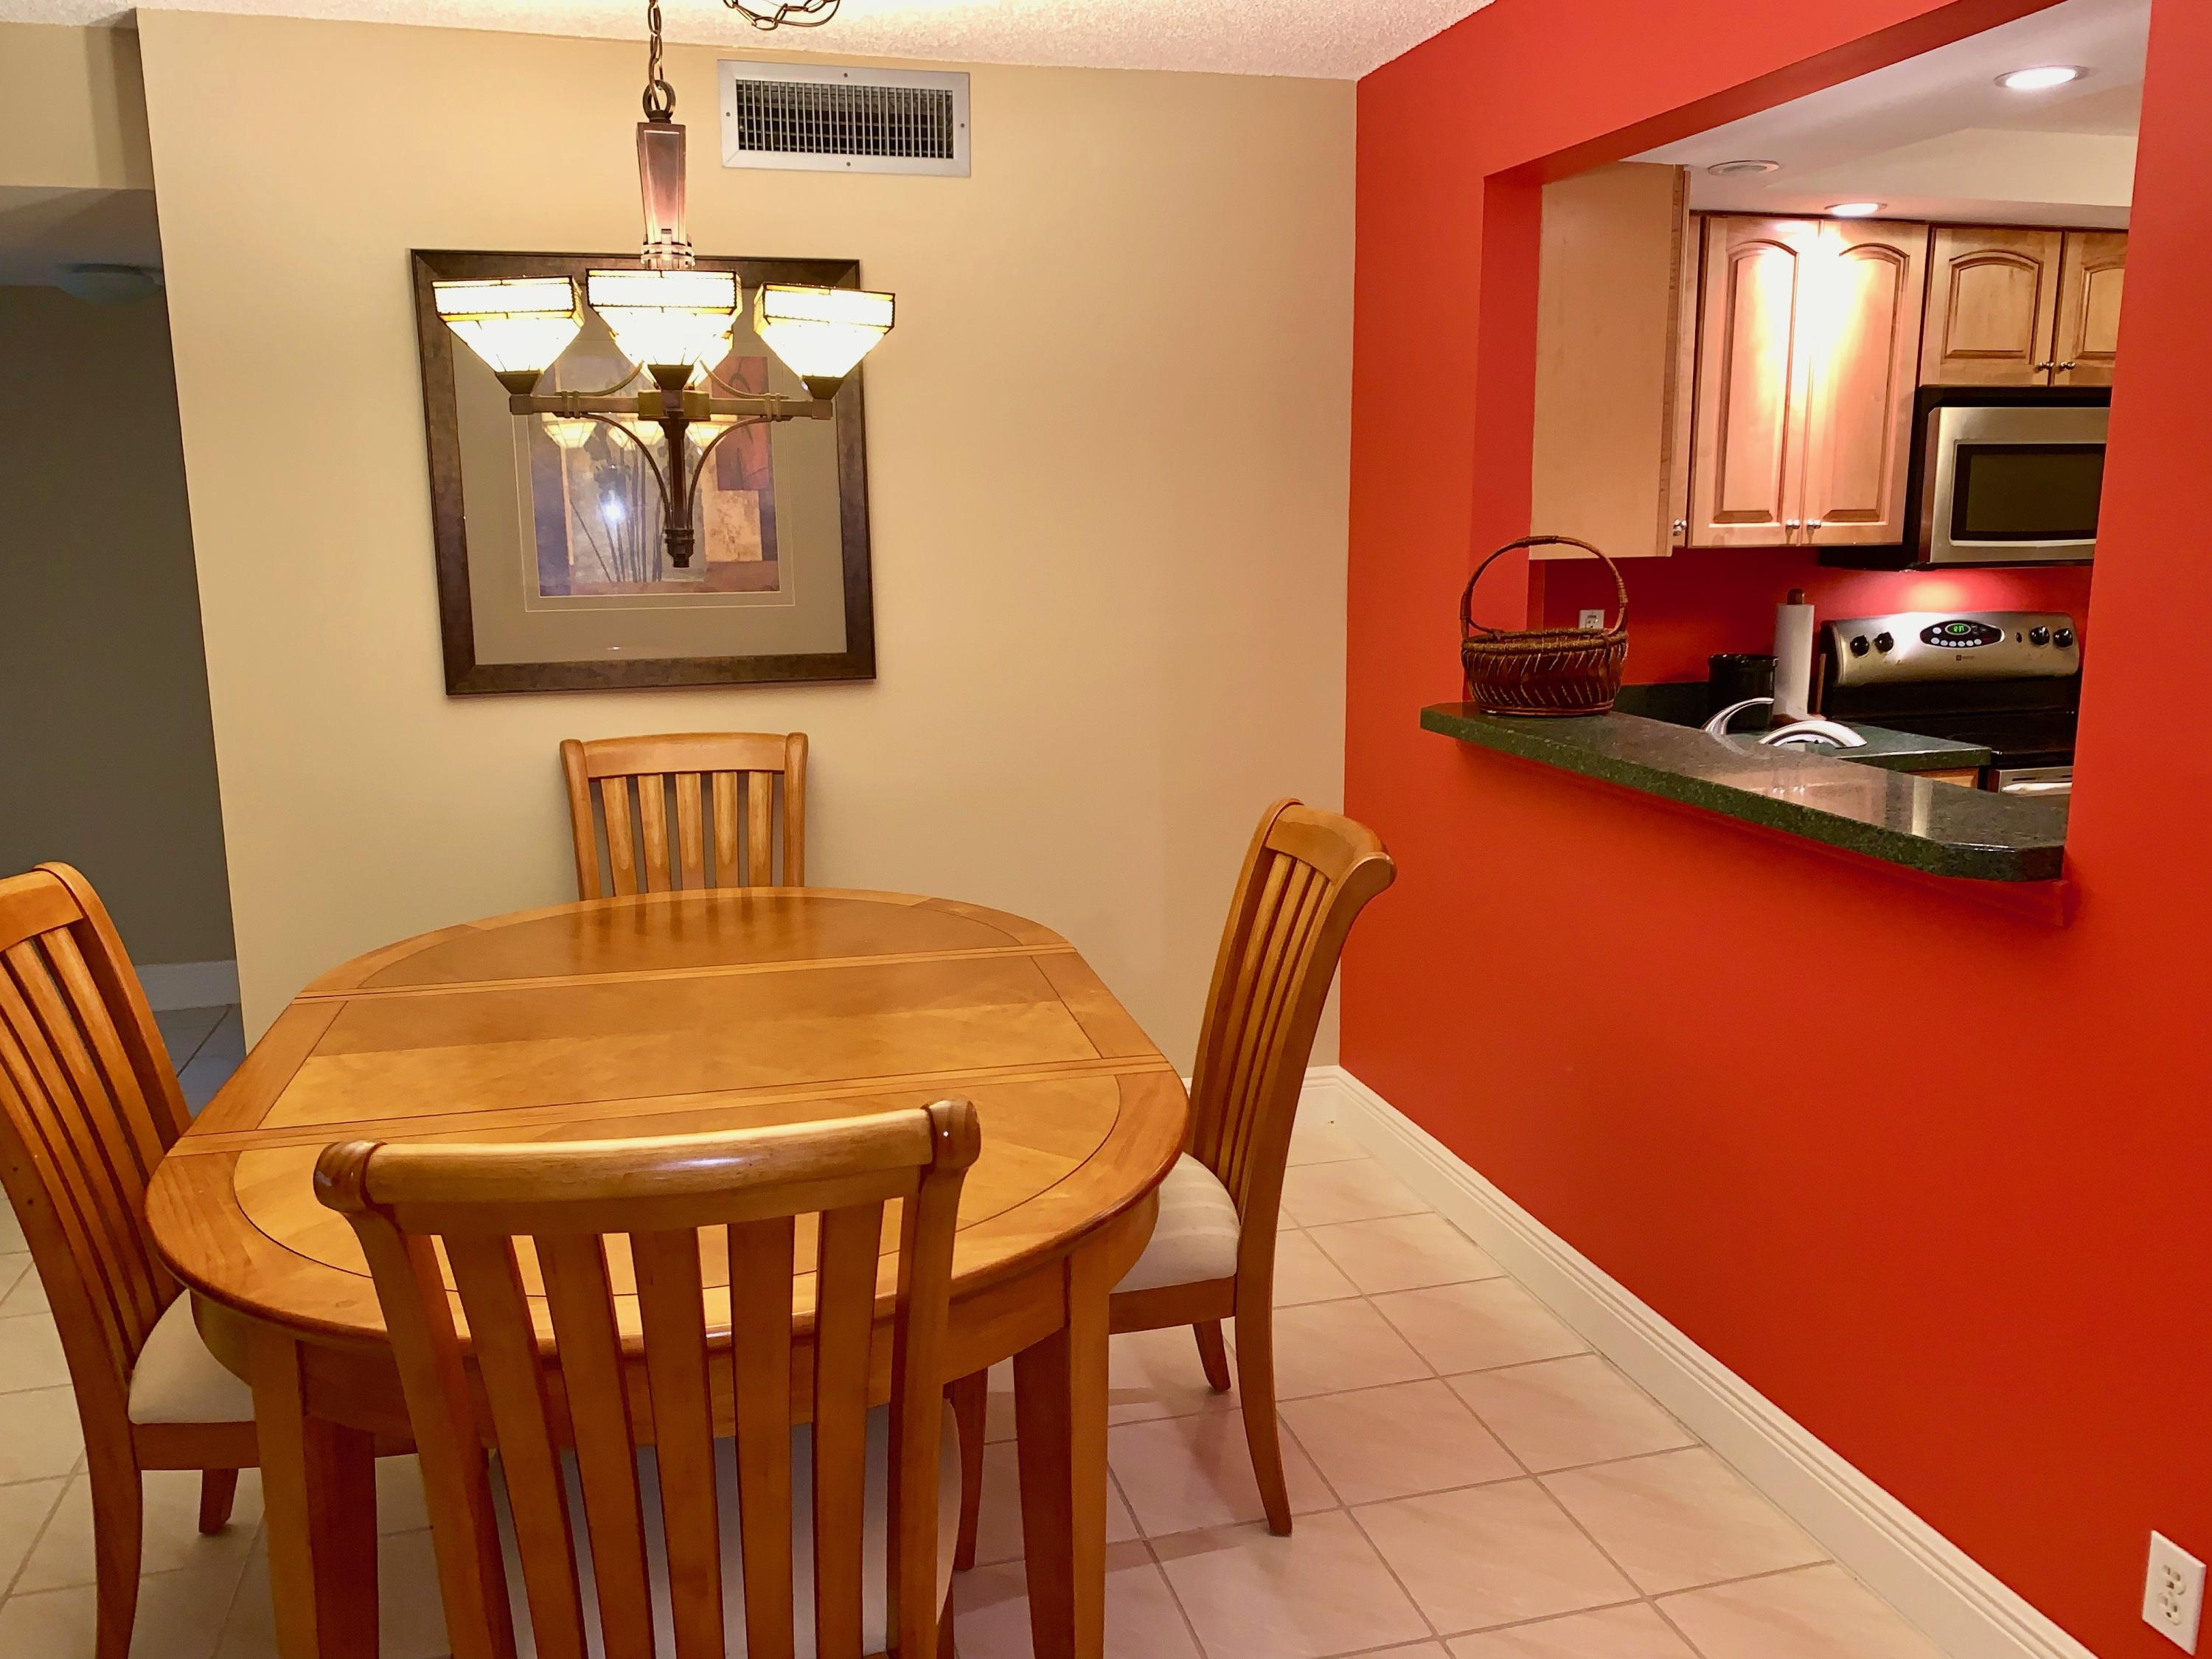 DINING AREA OPEN TO KITCHEN